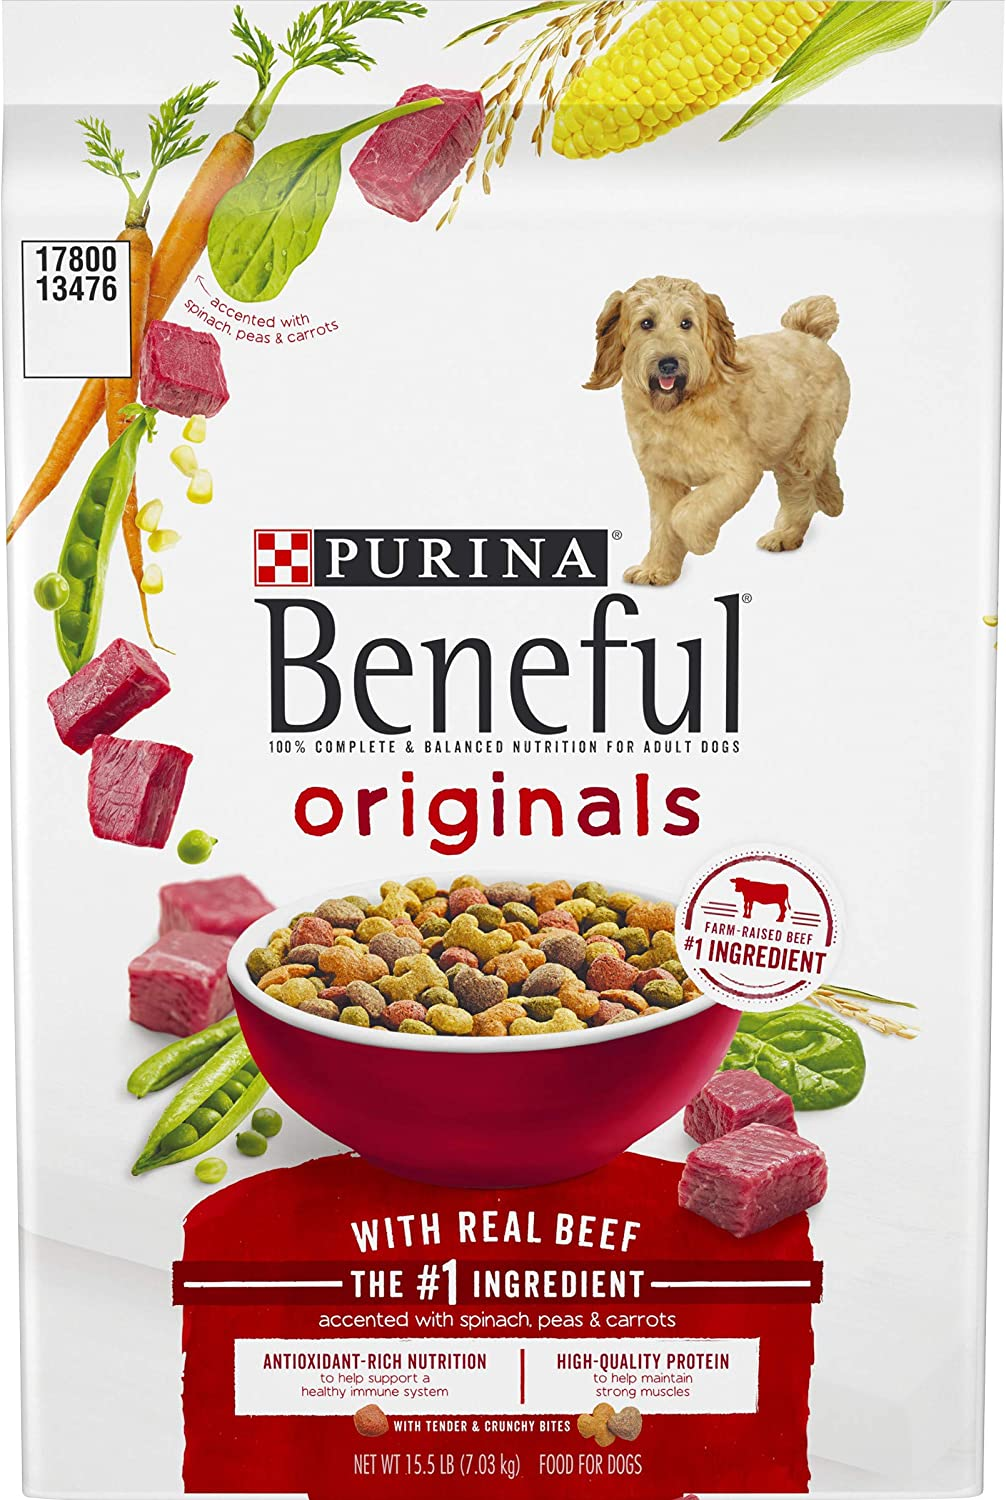 Purina Beneful Originals Adult Dry Dog Food – 15.5 lb. Bag